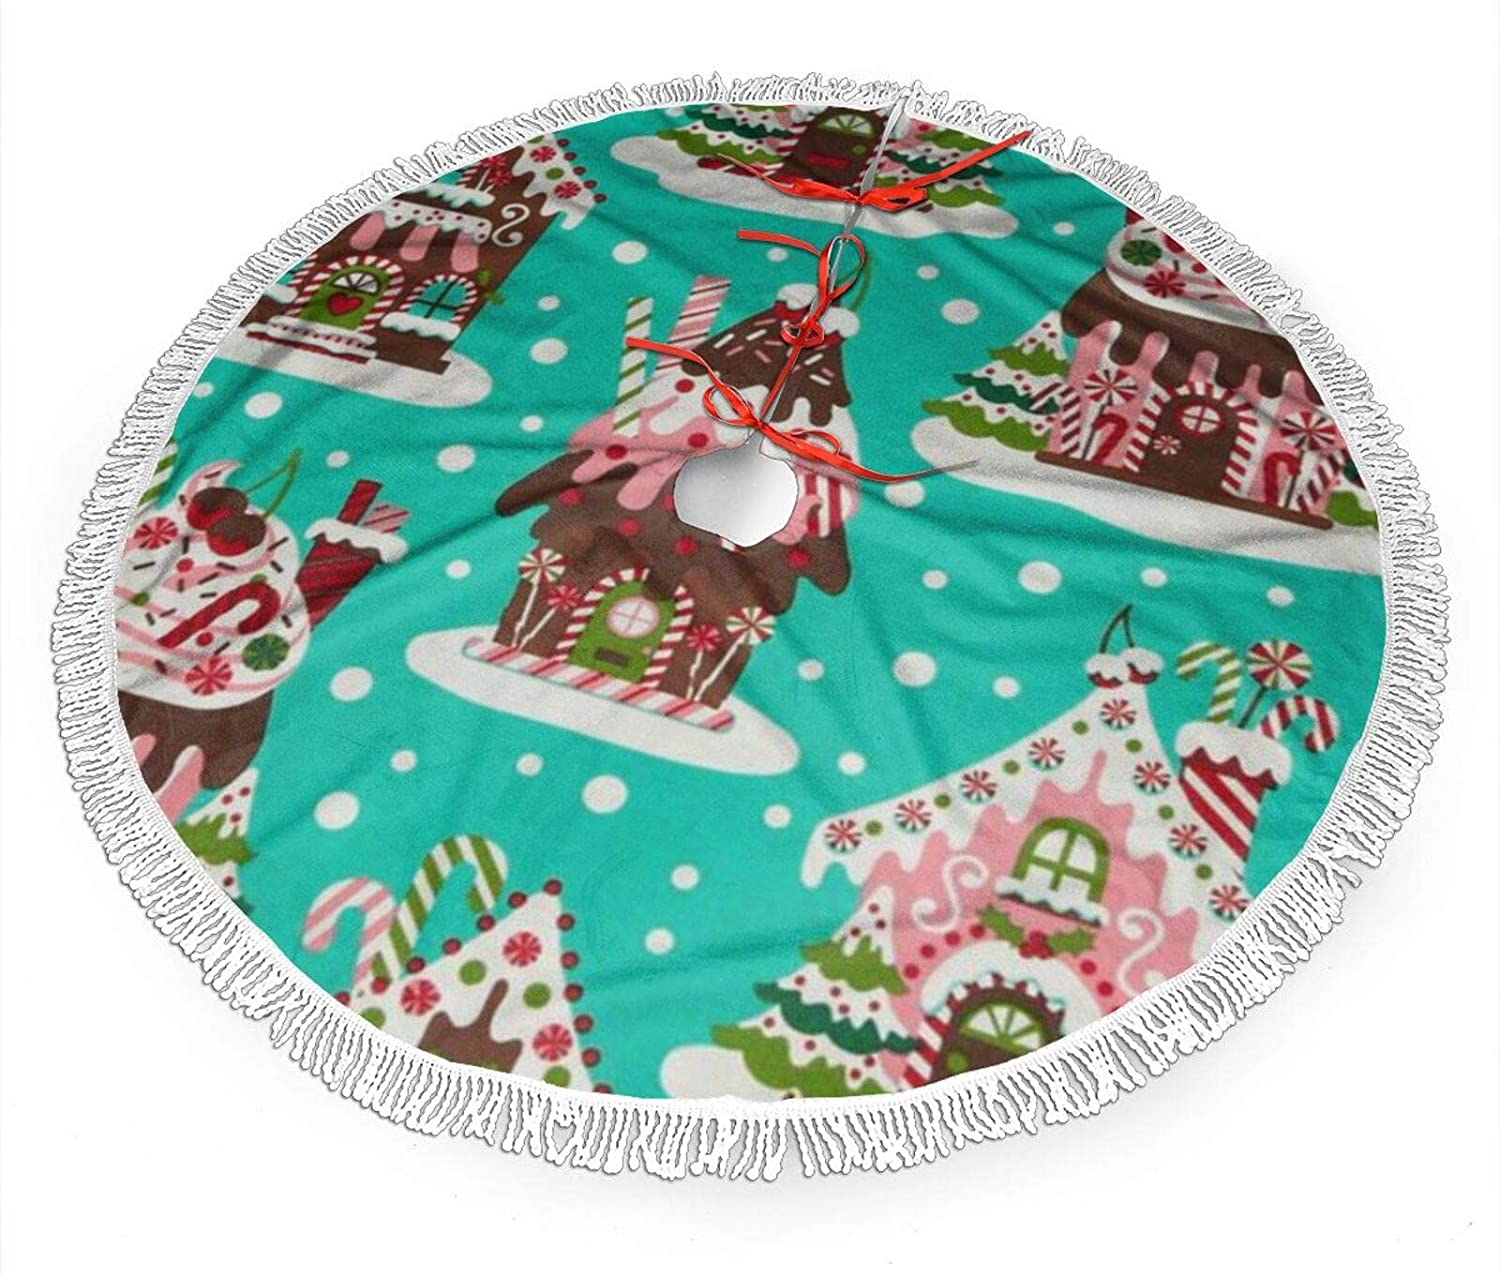 antcreptson Holiday Gingerbread Houses 48 Inch Christmas Tree Skirt Tree Skirt Ornament for Christmas Holiday Decoration